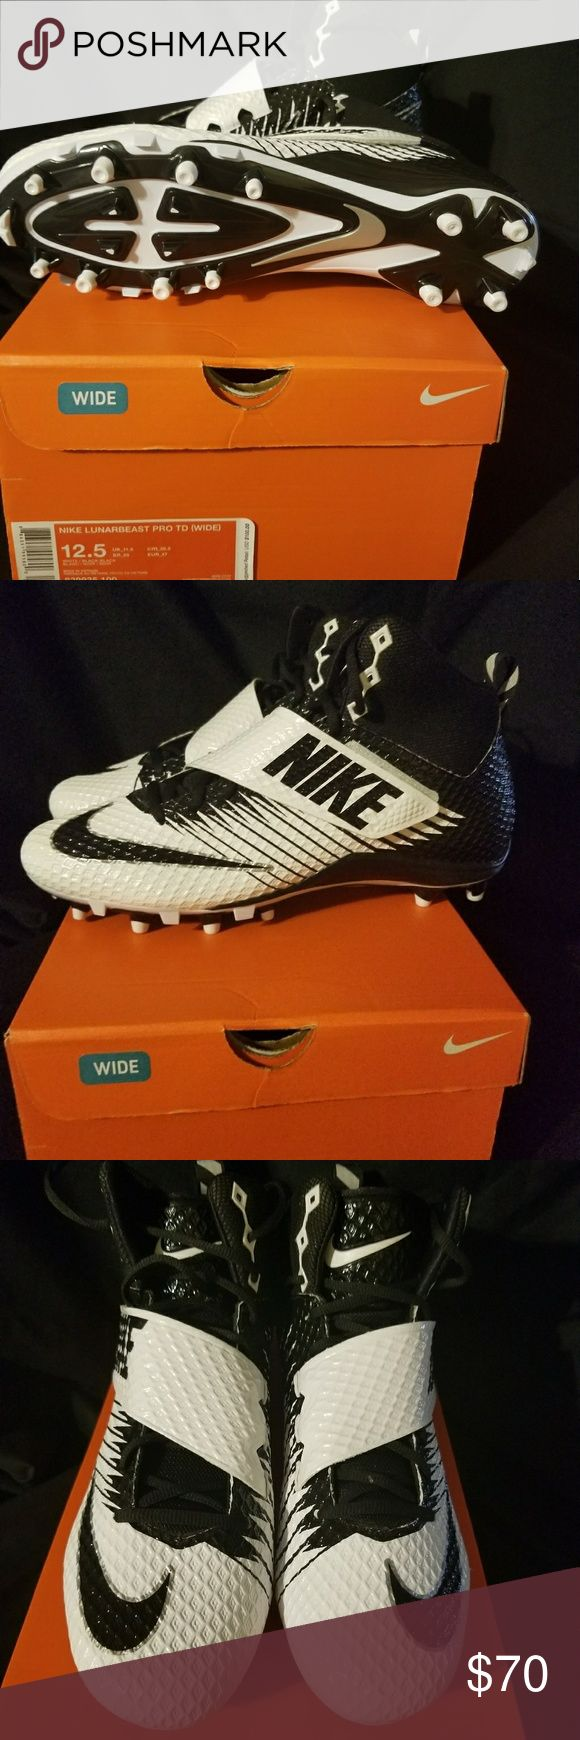 NIKE lunarbeast pro td (wide) football cleats Black/white brand new with box Nike Shoes Athletic Shoes